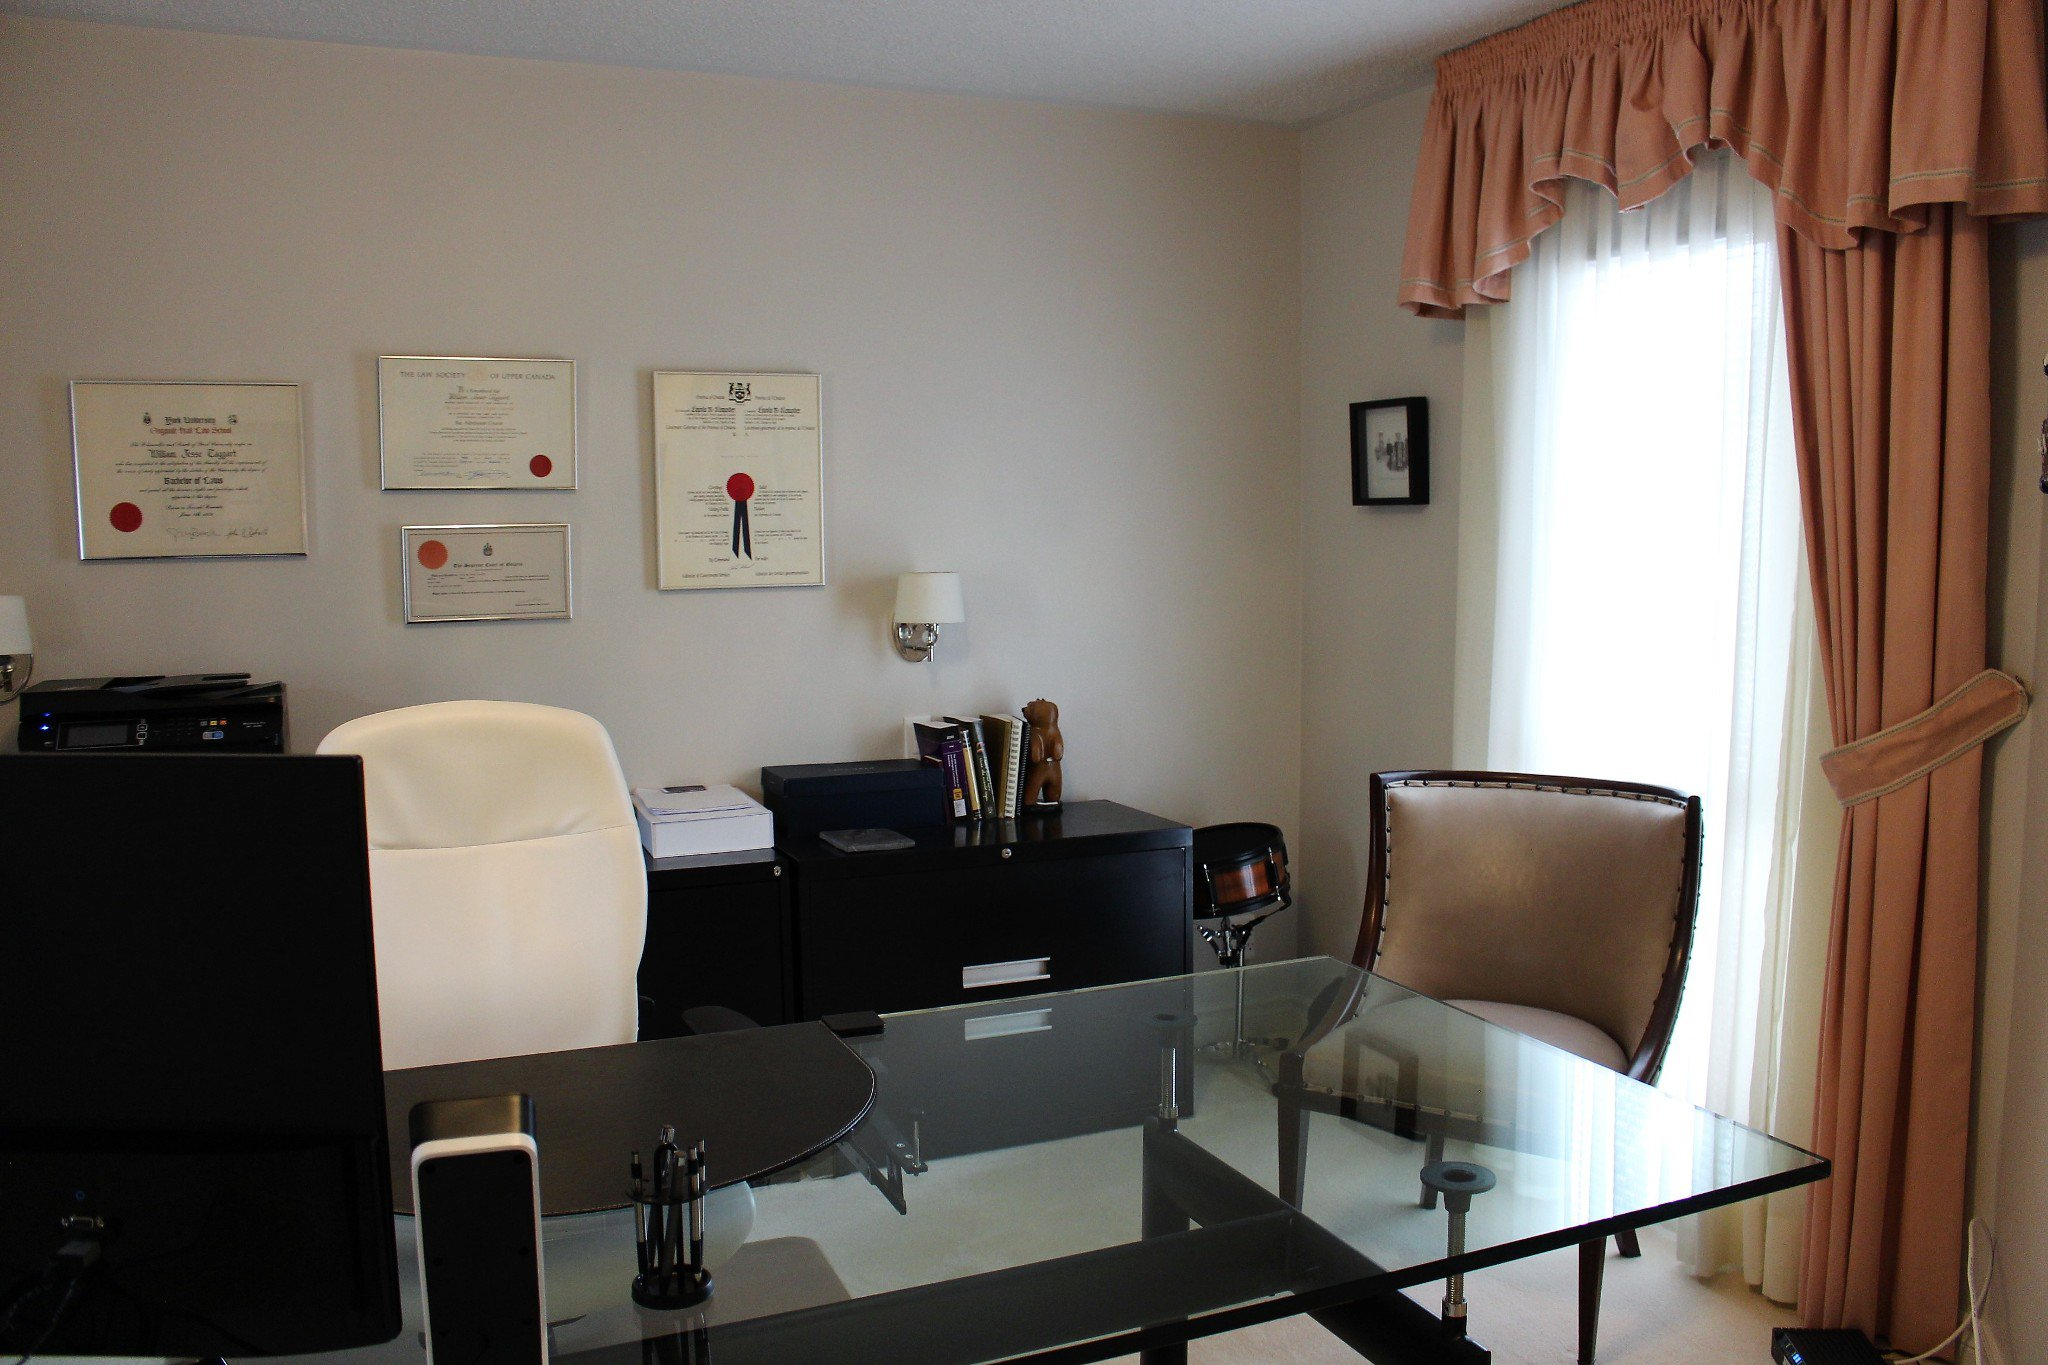 Photo 18: Photos: 113 245 Elgin Street in Cobourg: Residential Attached for sale : MLS®# 219780